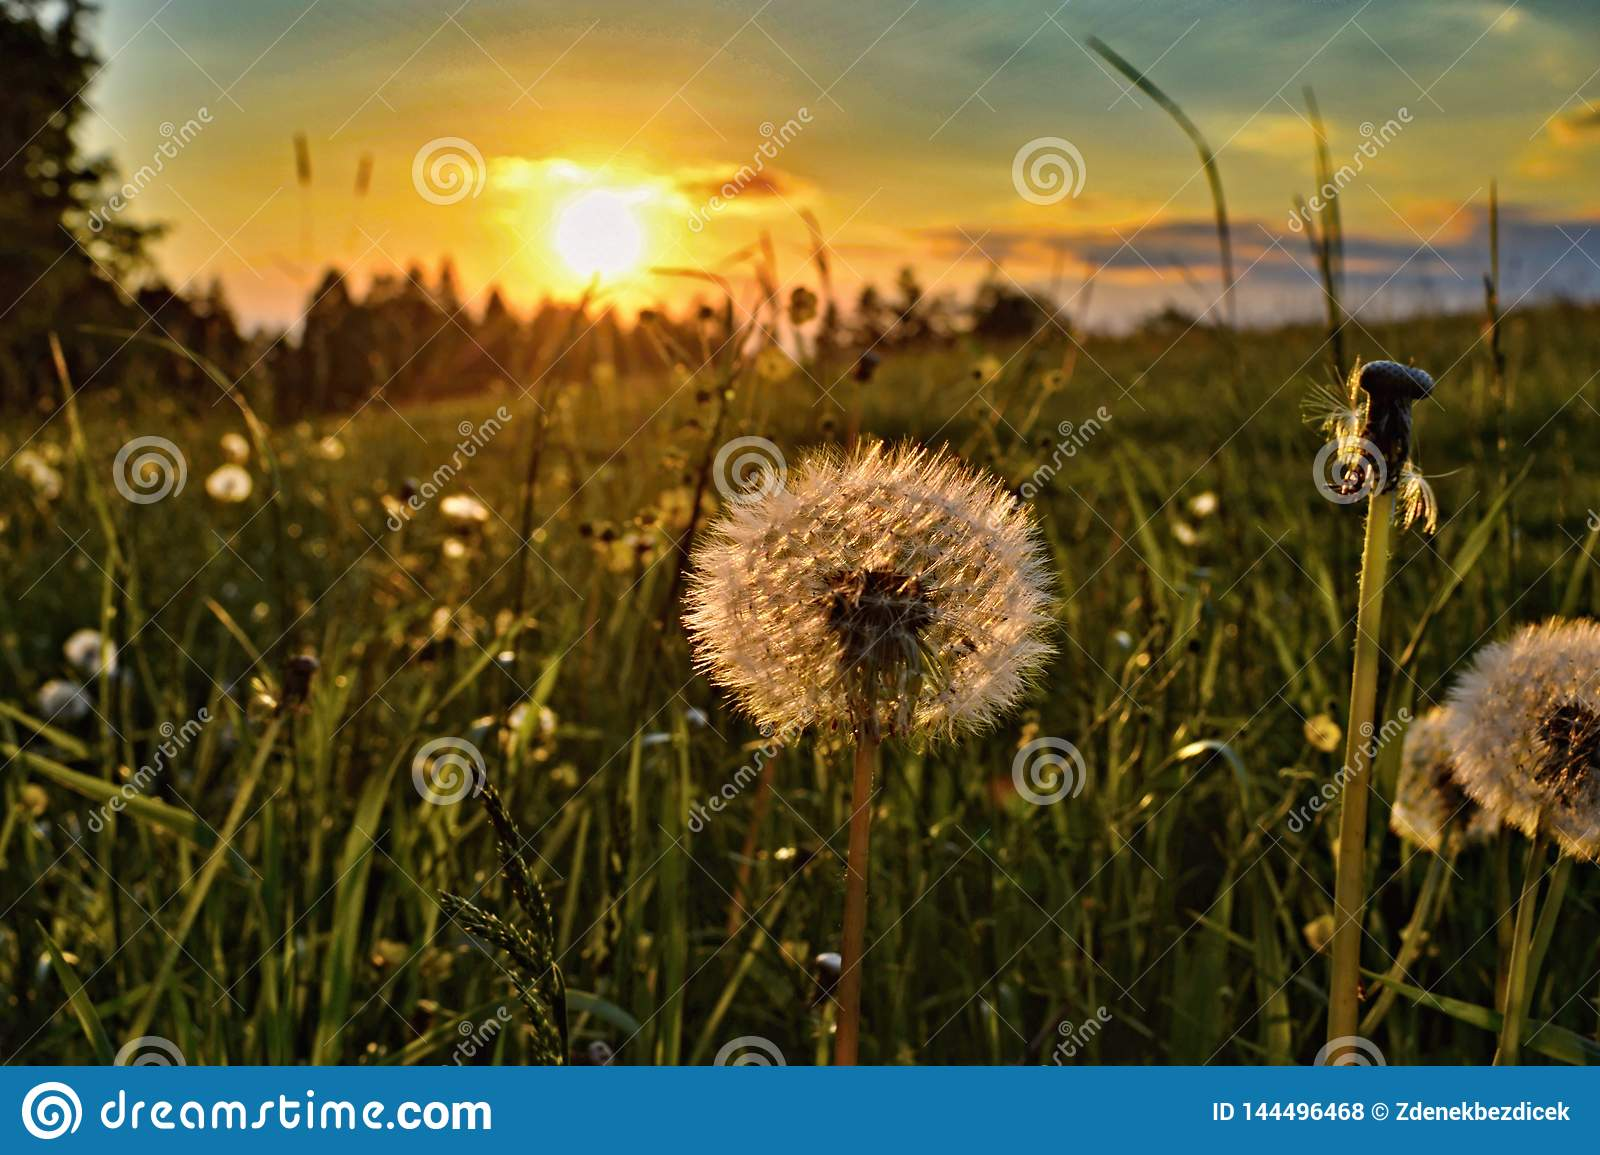 Sunset with dandelion in the foreground.